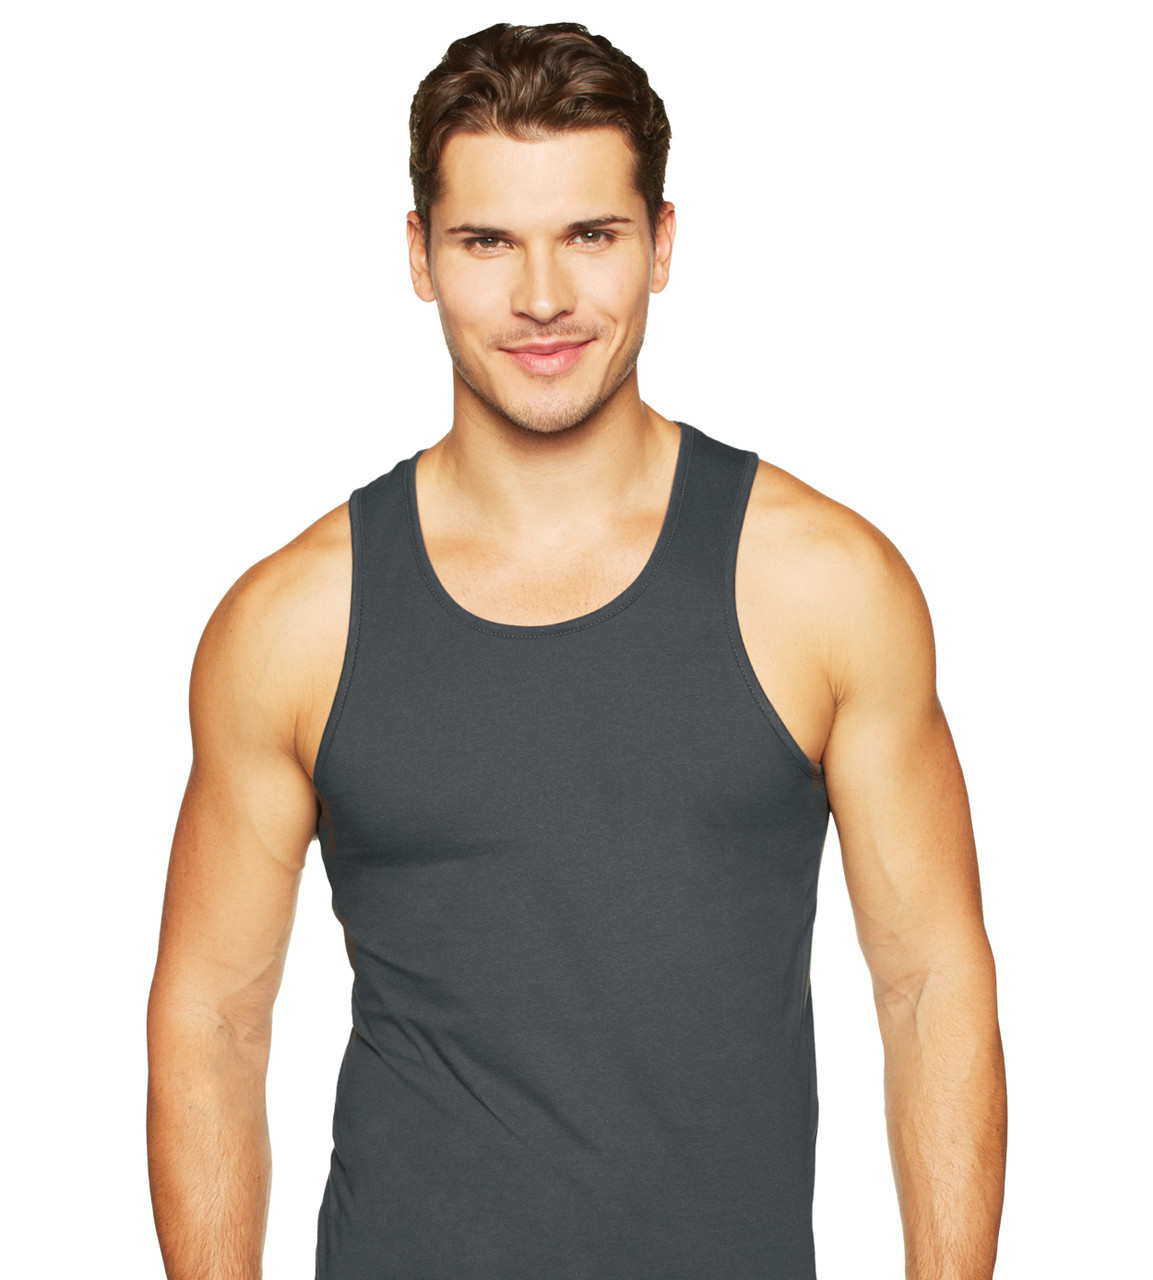 74f67e2f67408 Next Level Apparel 3633 - Men s Premium Cotton Tank Top S-2XL